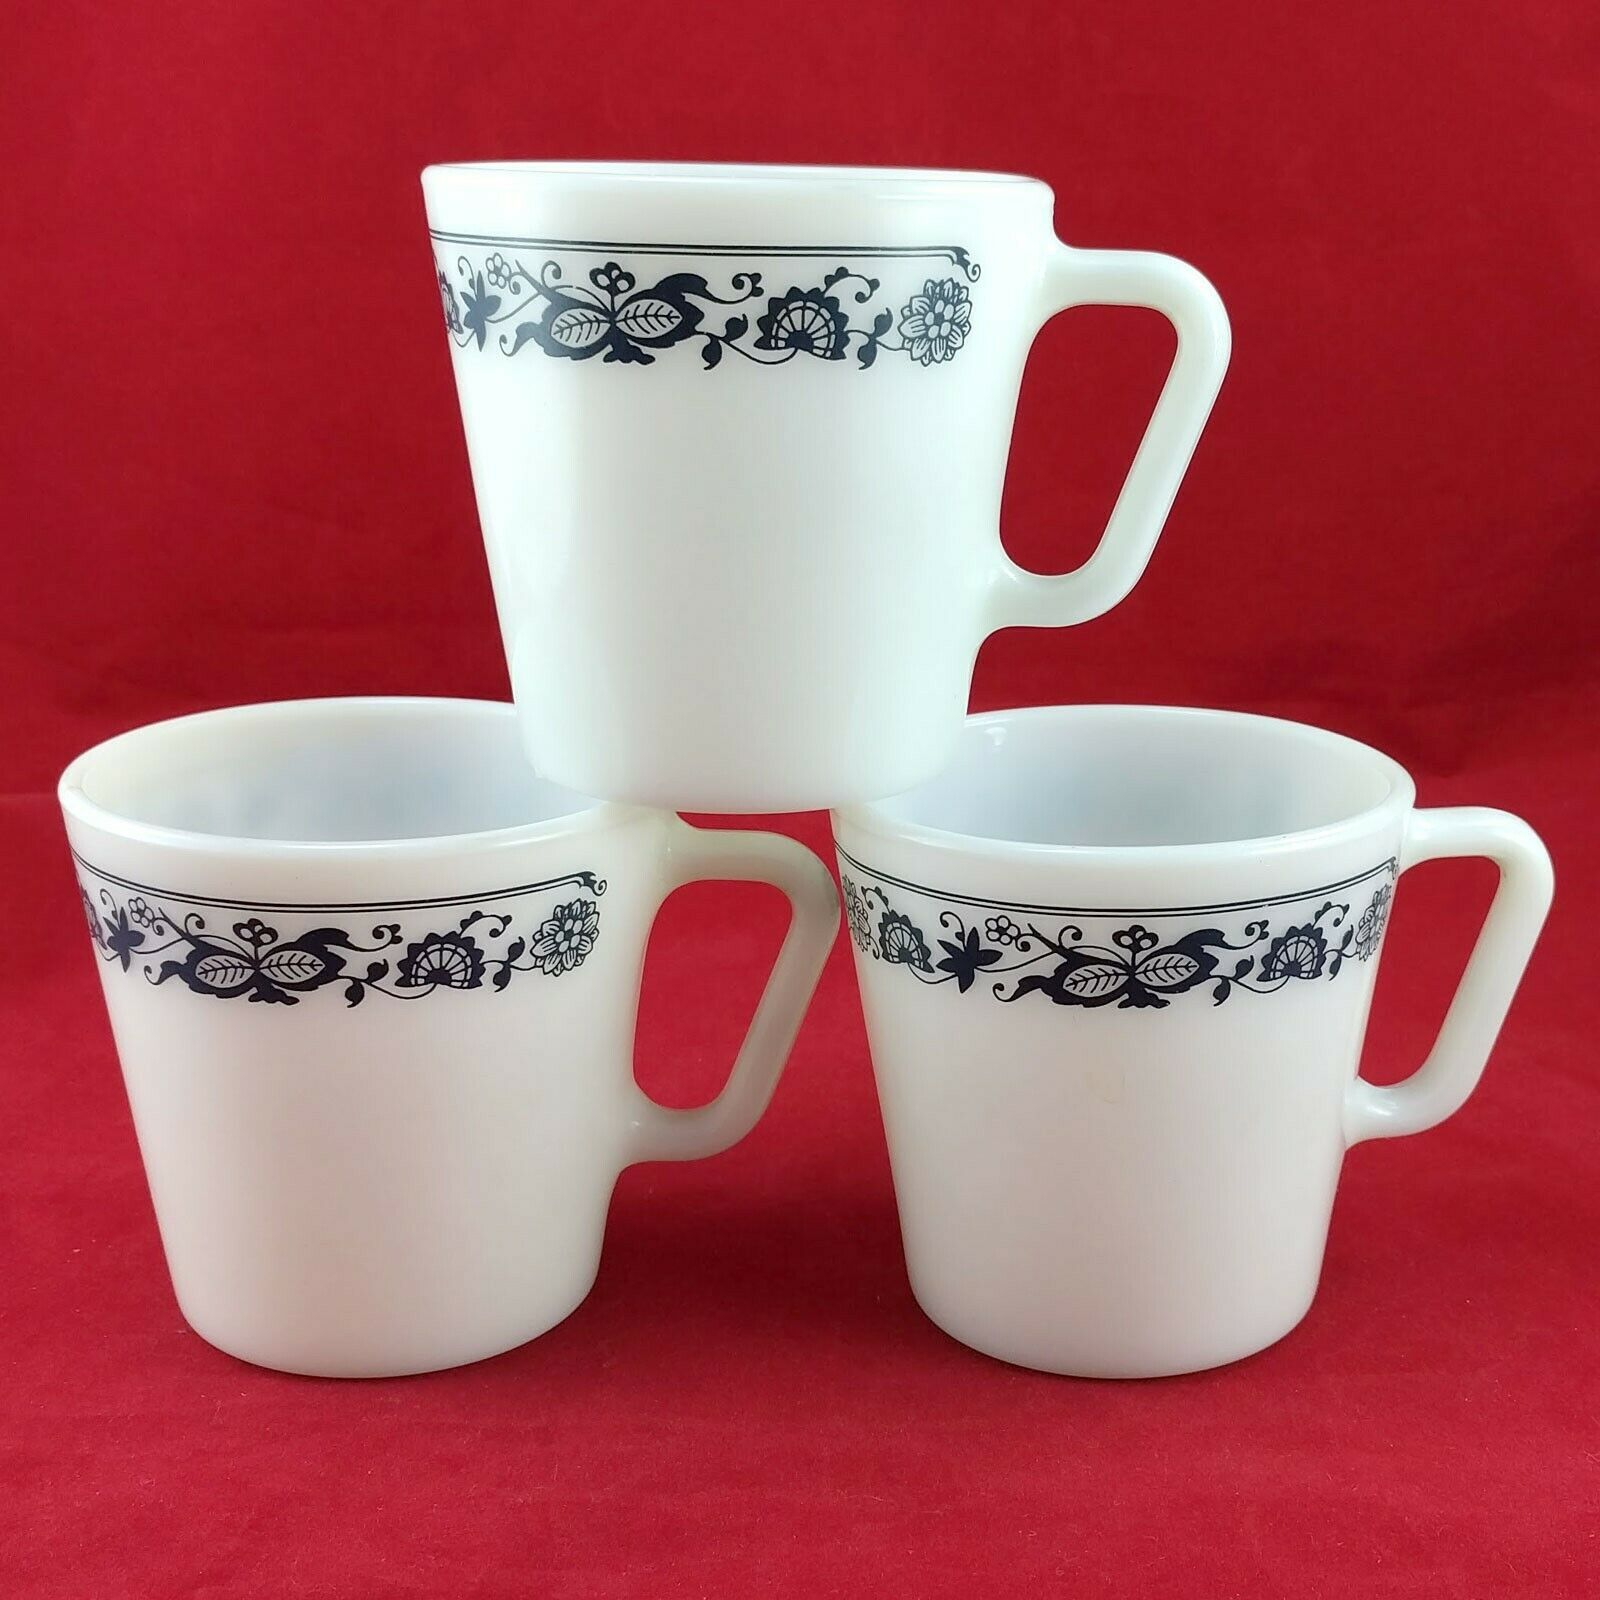 Pyrex 1410 Coffee Cups Vintage Old Town Blue ~ Set of 3 ~ Made in the USA